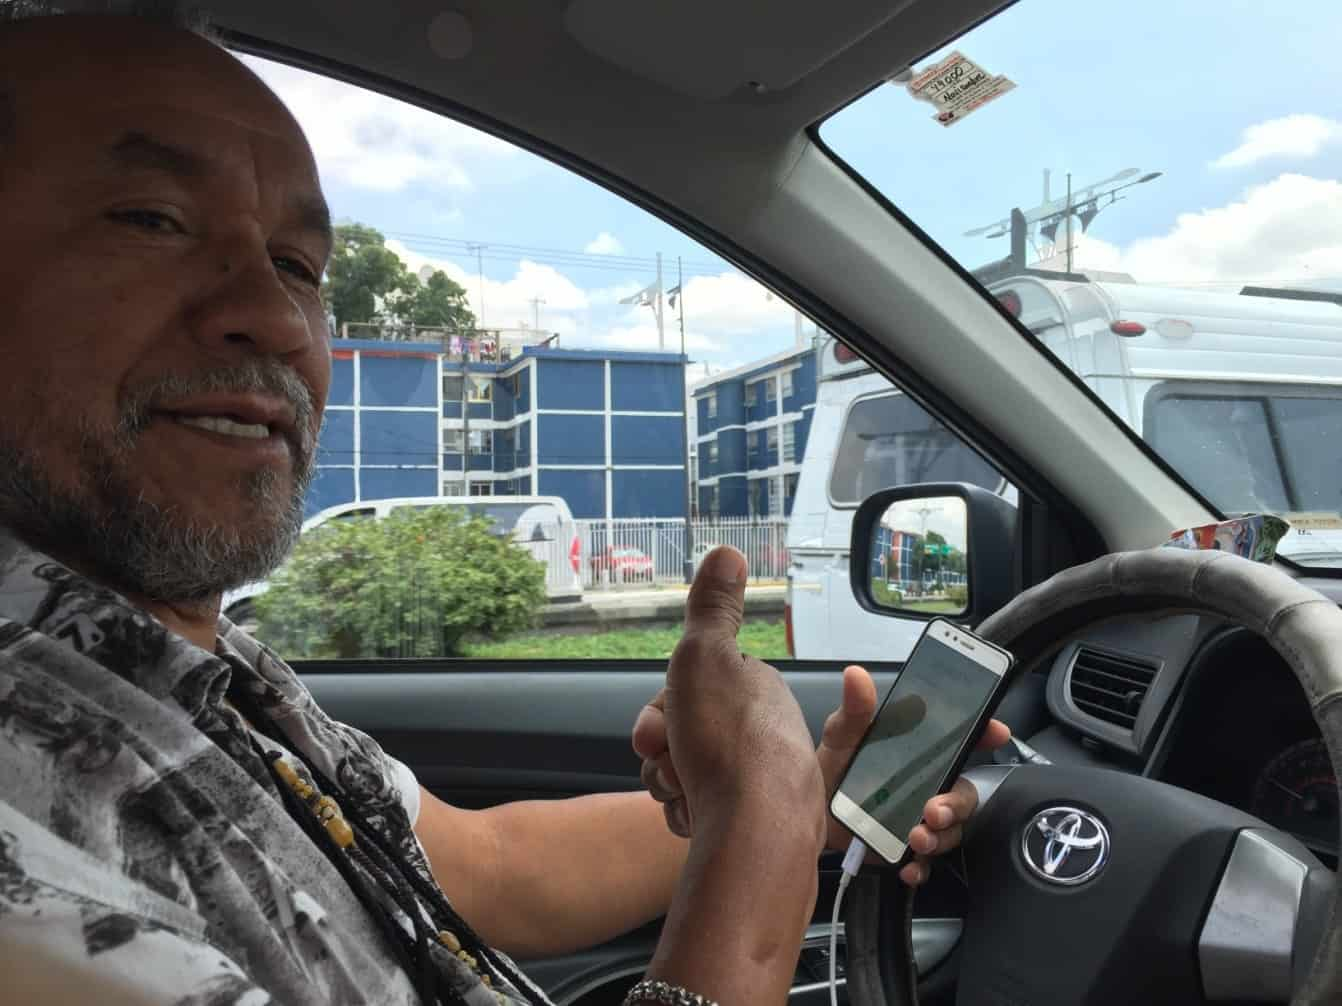 Taxi driver Benito - Further adventures in Mexico City